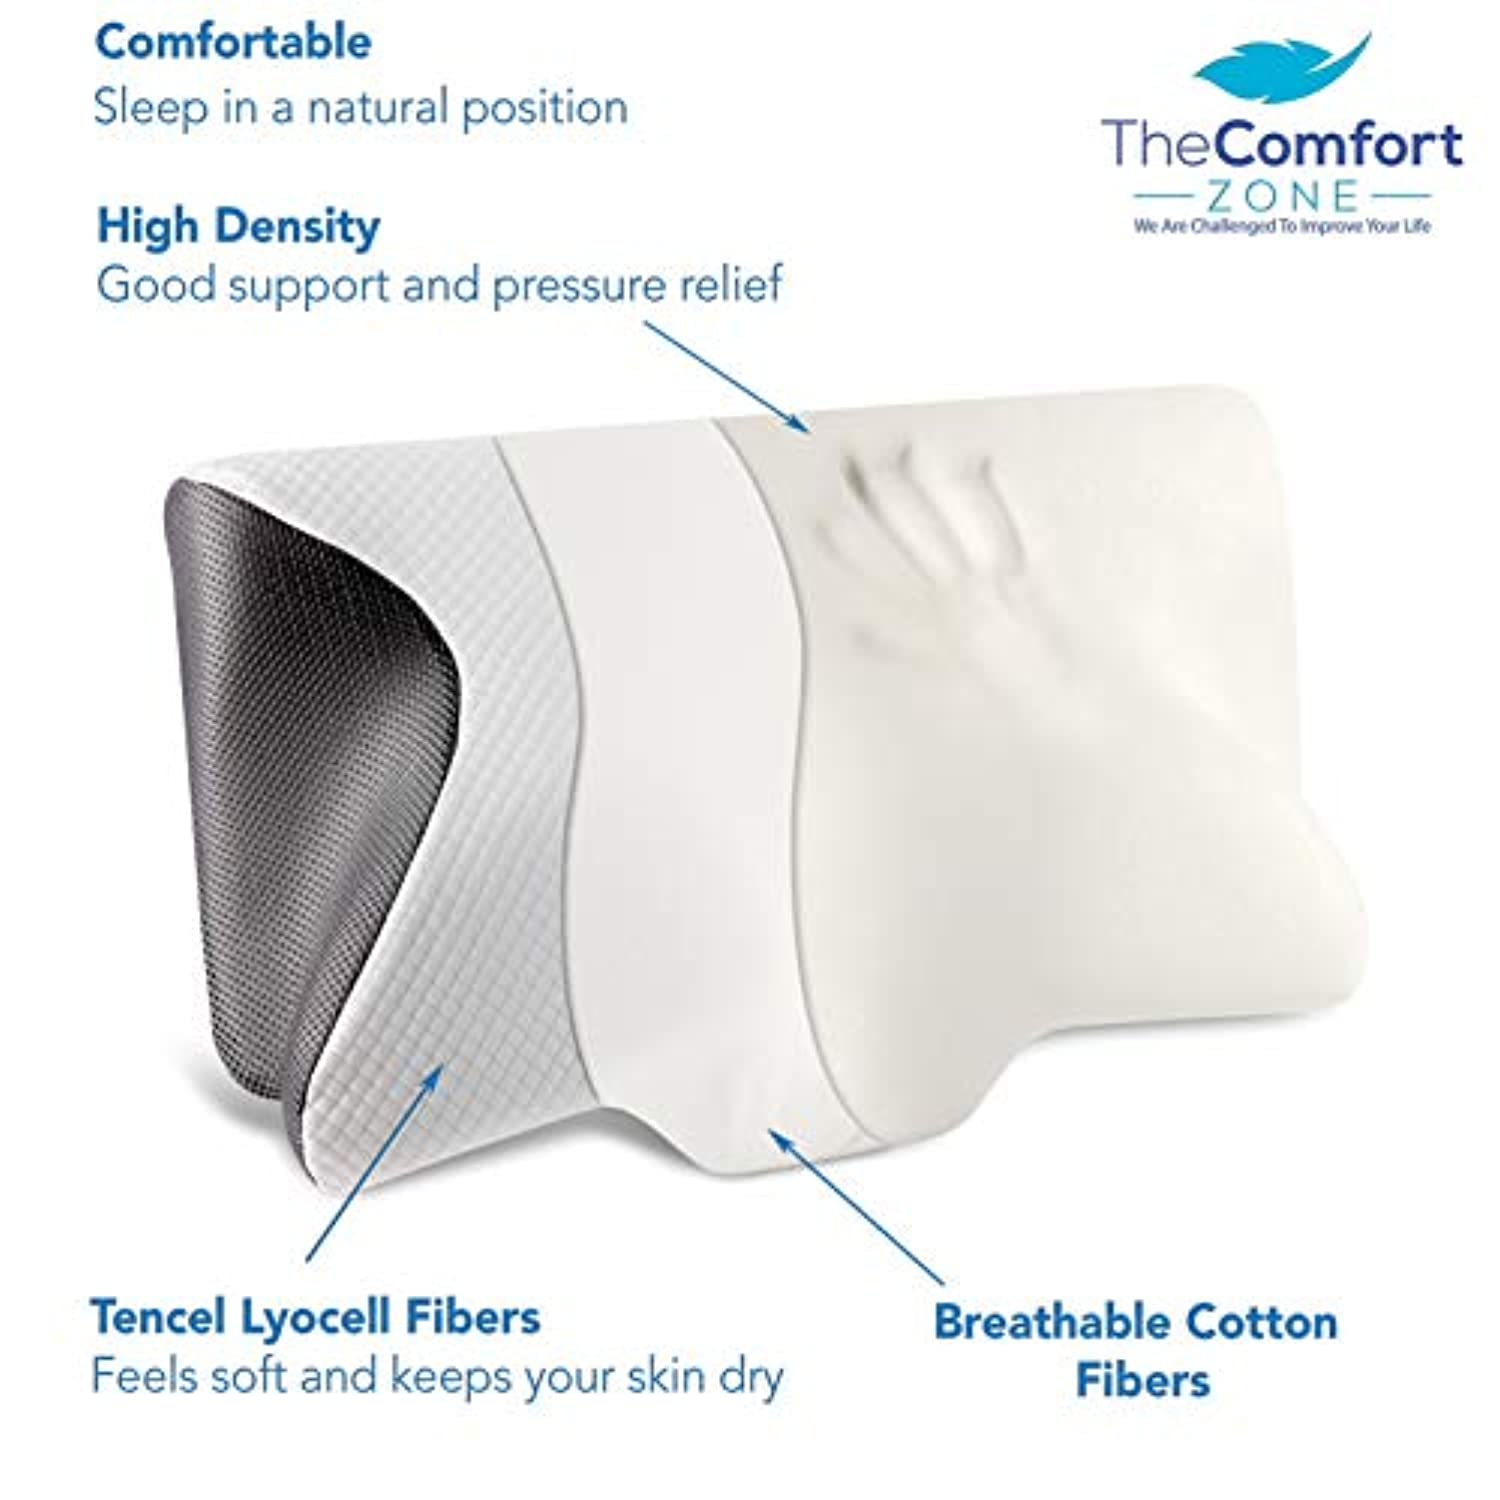 Orthopedic Memory Foam Pillow with Cooling Tencel Fibers - smrt-life.com